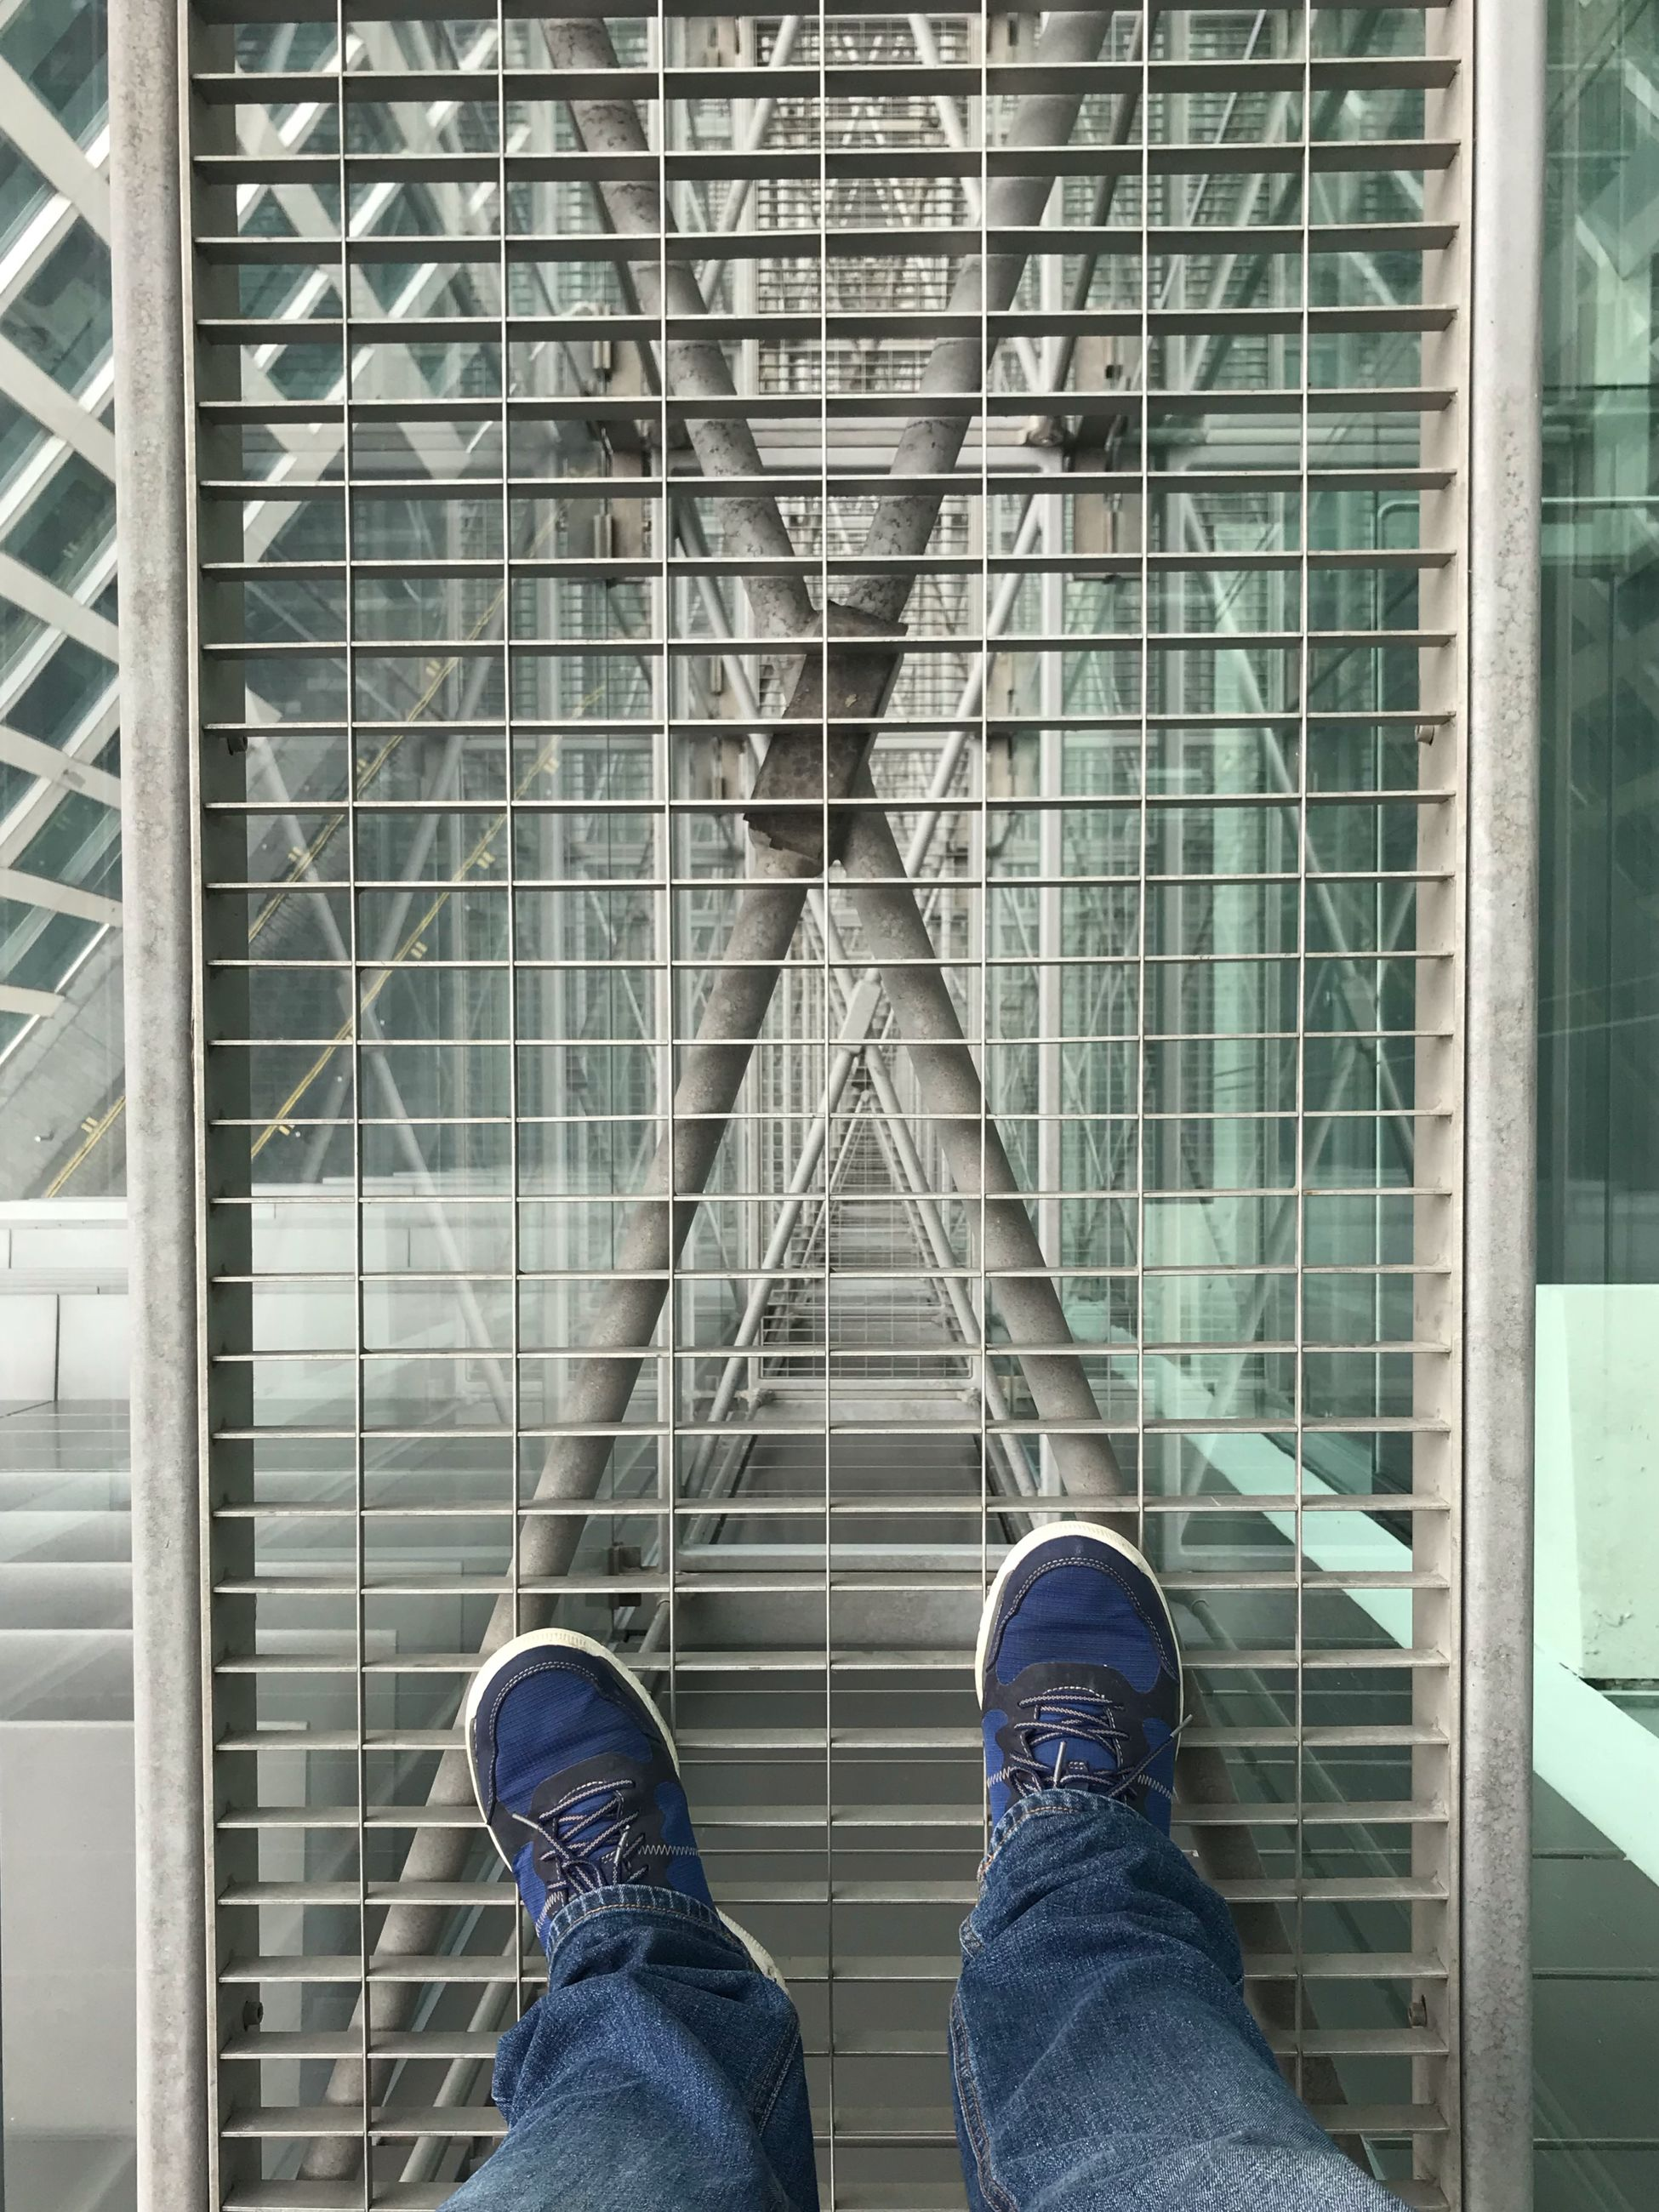 shoe, real people, low section, one person, human leg, body part, human body part, personal perspective, men, built structure, standing, architecture, day, lifestyles, outdoors, jeans, casual clothing, directly above, human foot